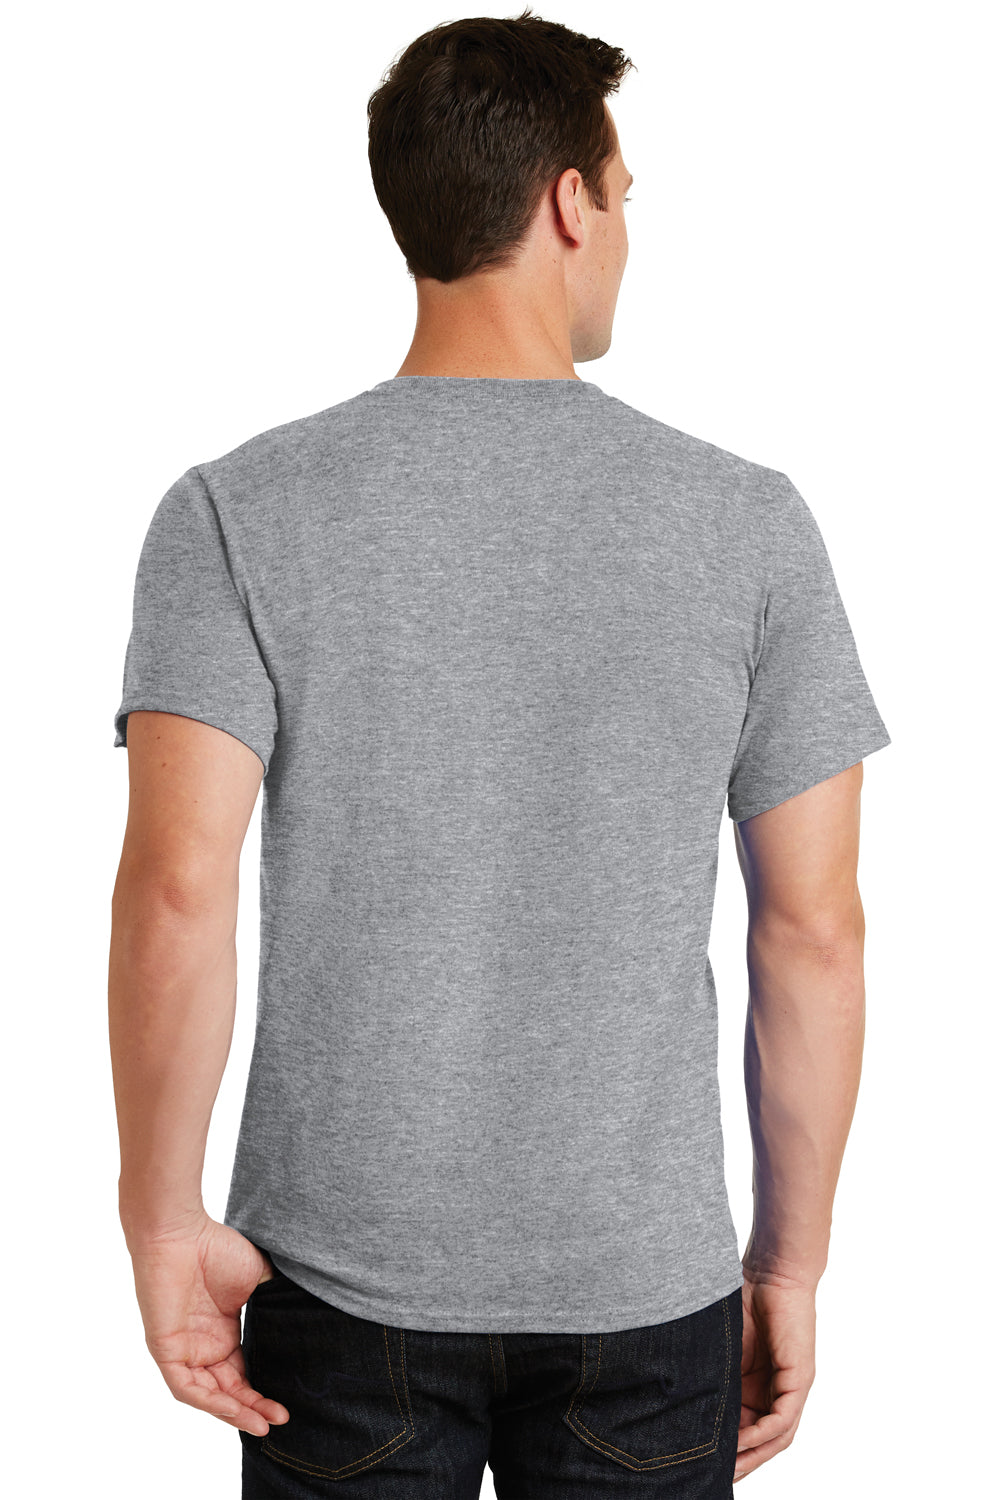 Port & Company PC61 Mens Essential Short Sleeve Crewneck T-Shirt Heather Grey Back